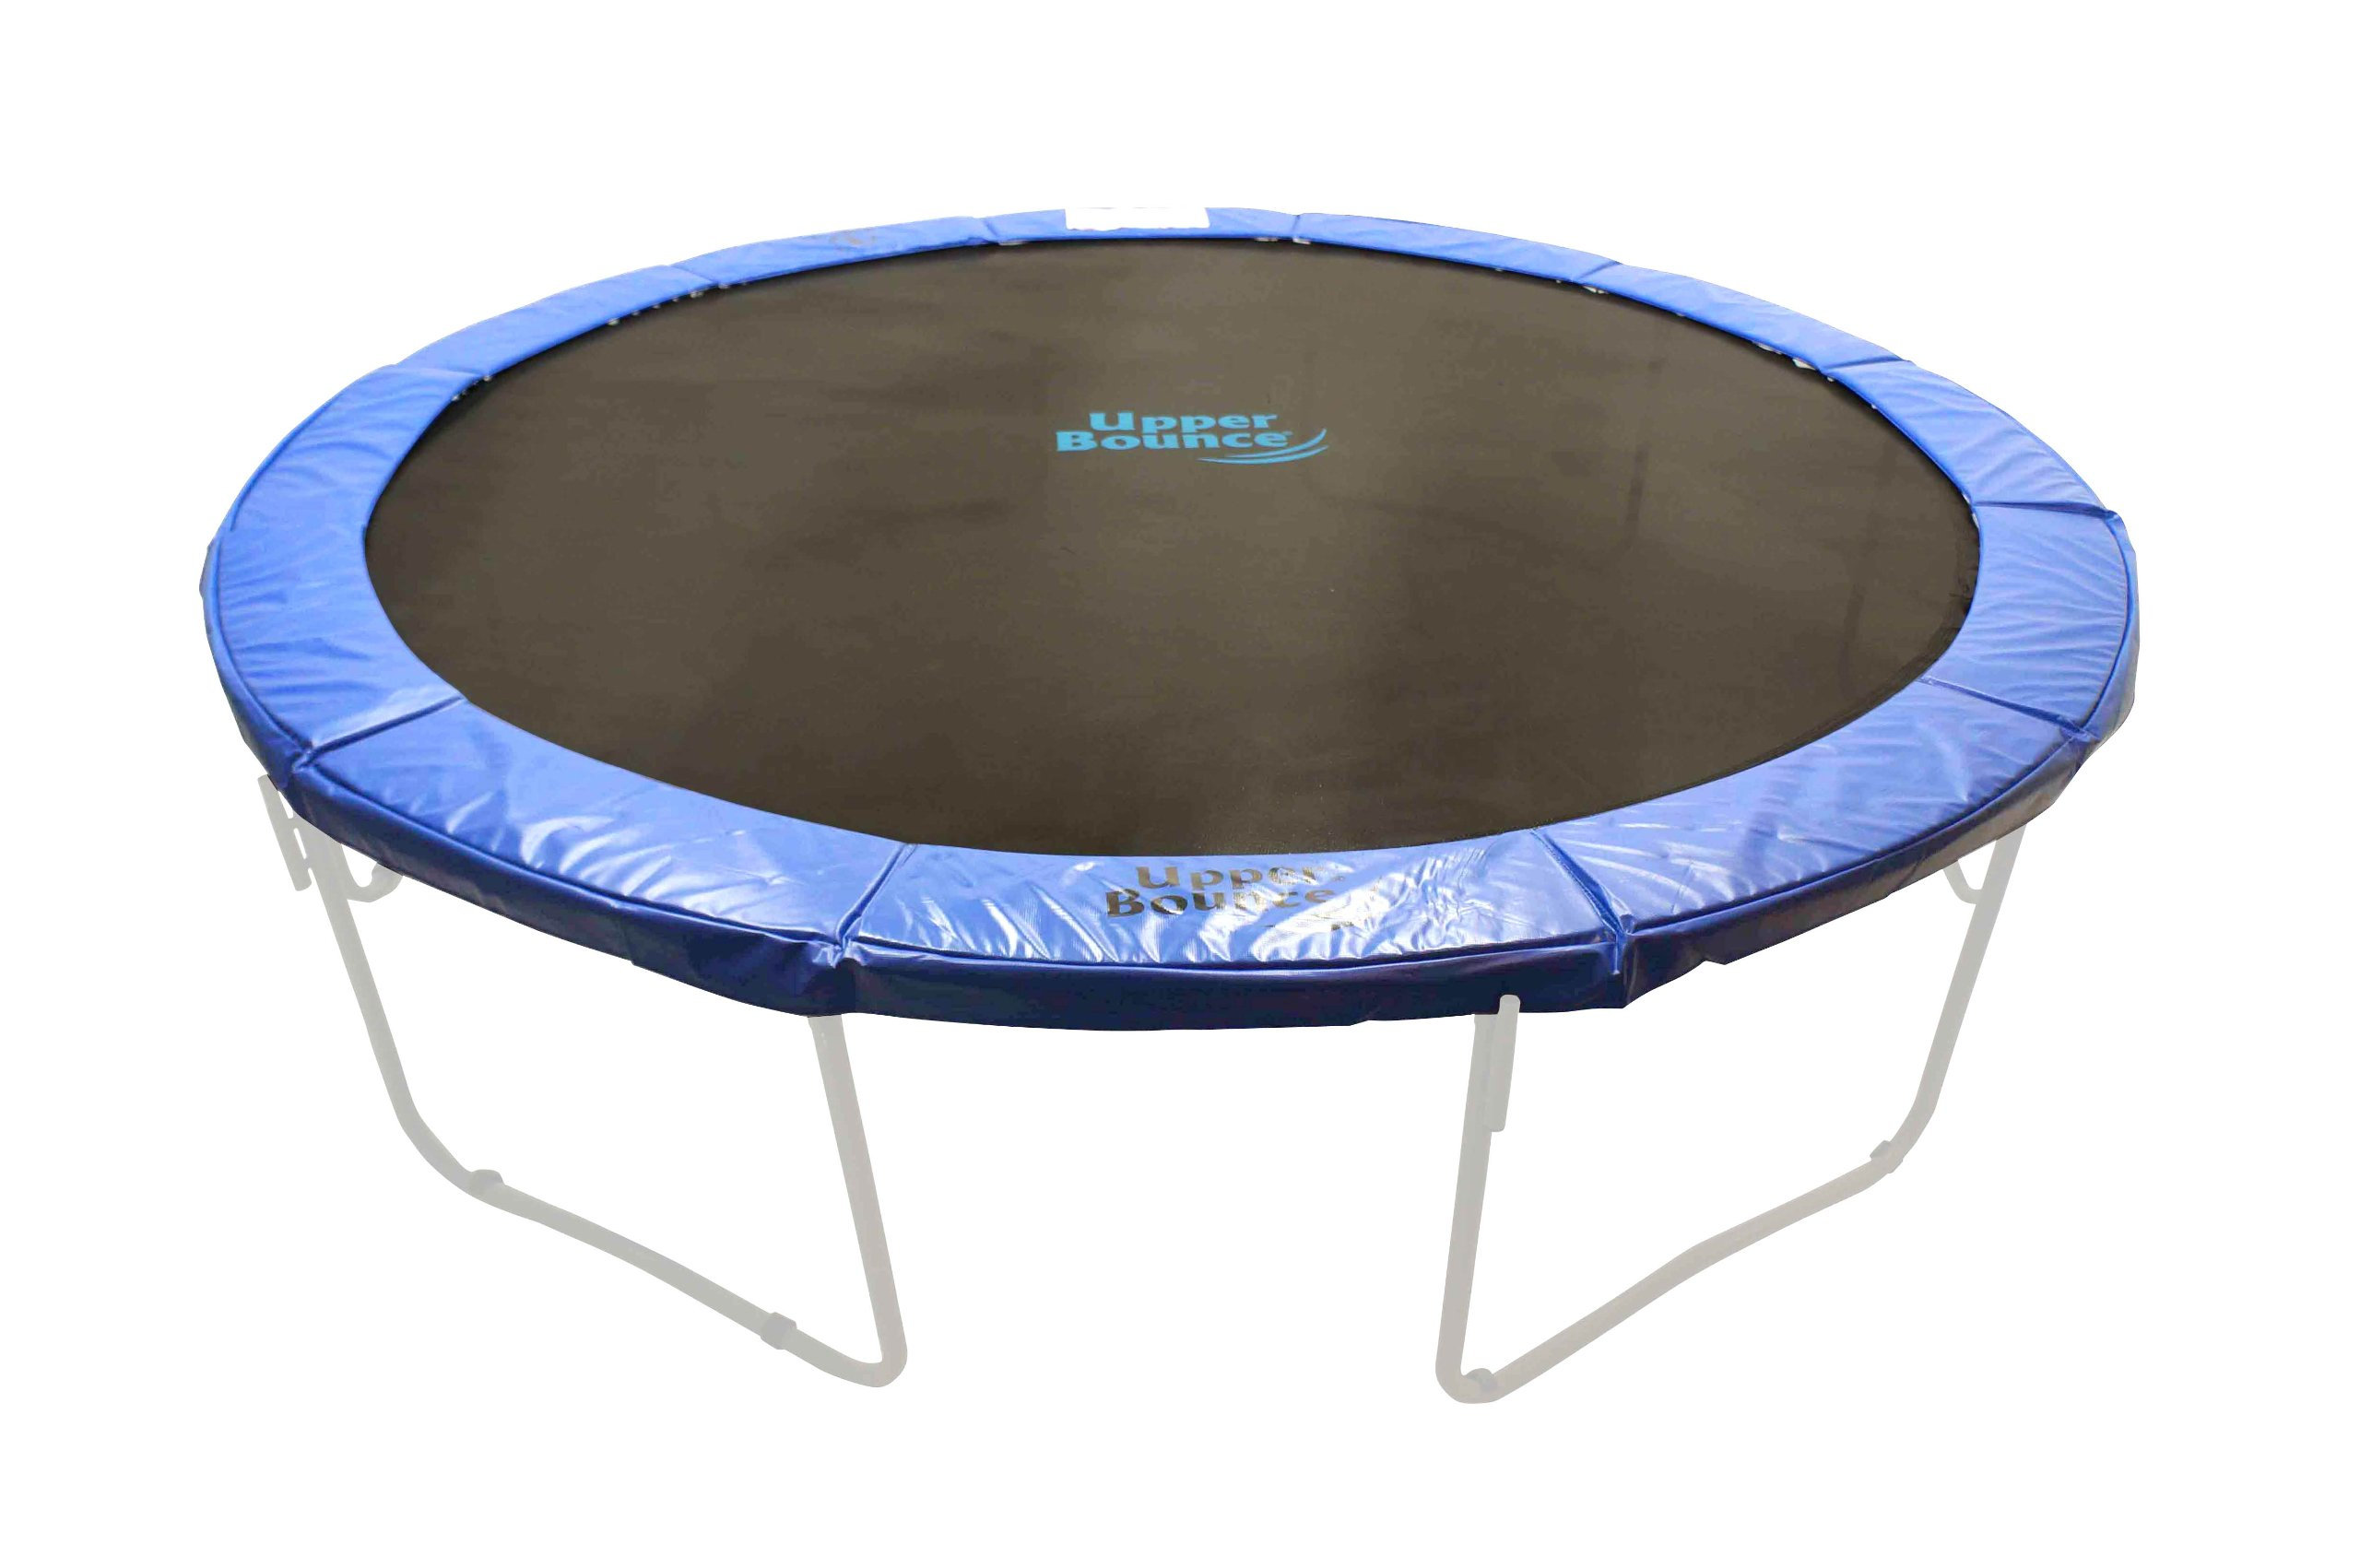 Upper Bounce 12' Premium Trampoline Safety Pad (Spring Cover) Fits for 12 FT. Round Trampoline Frames. 10'' Wide - Blue by Upper Bounce